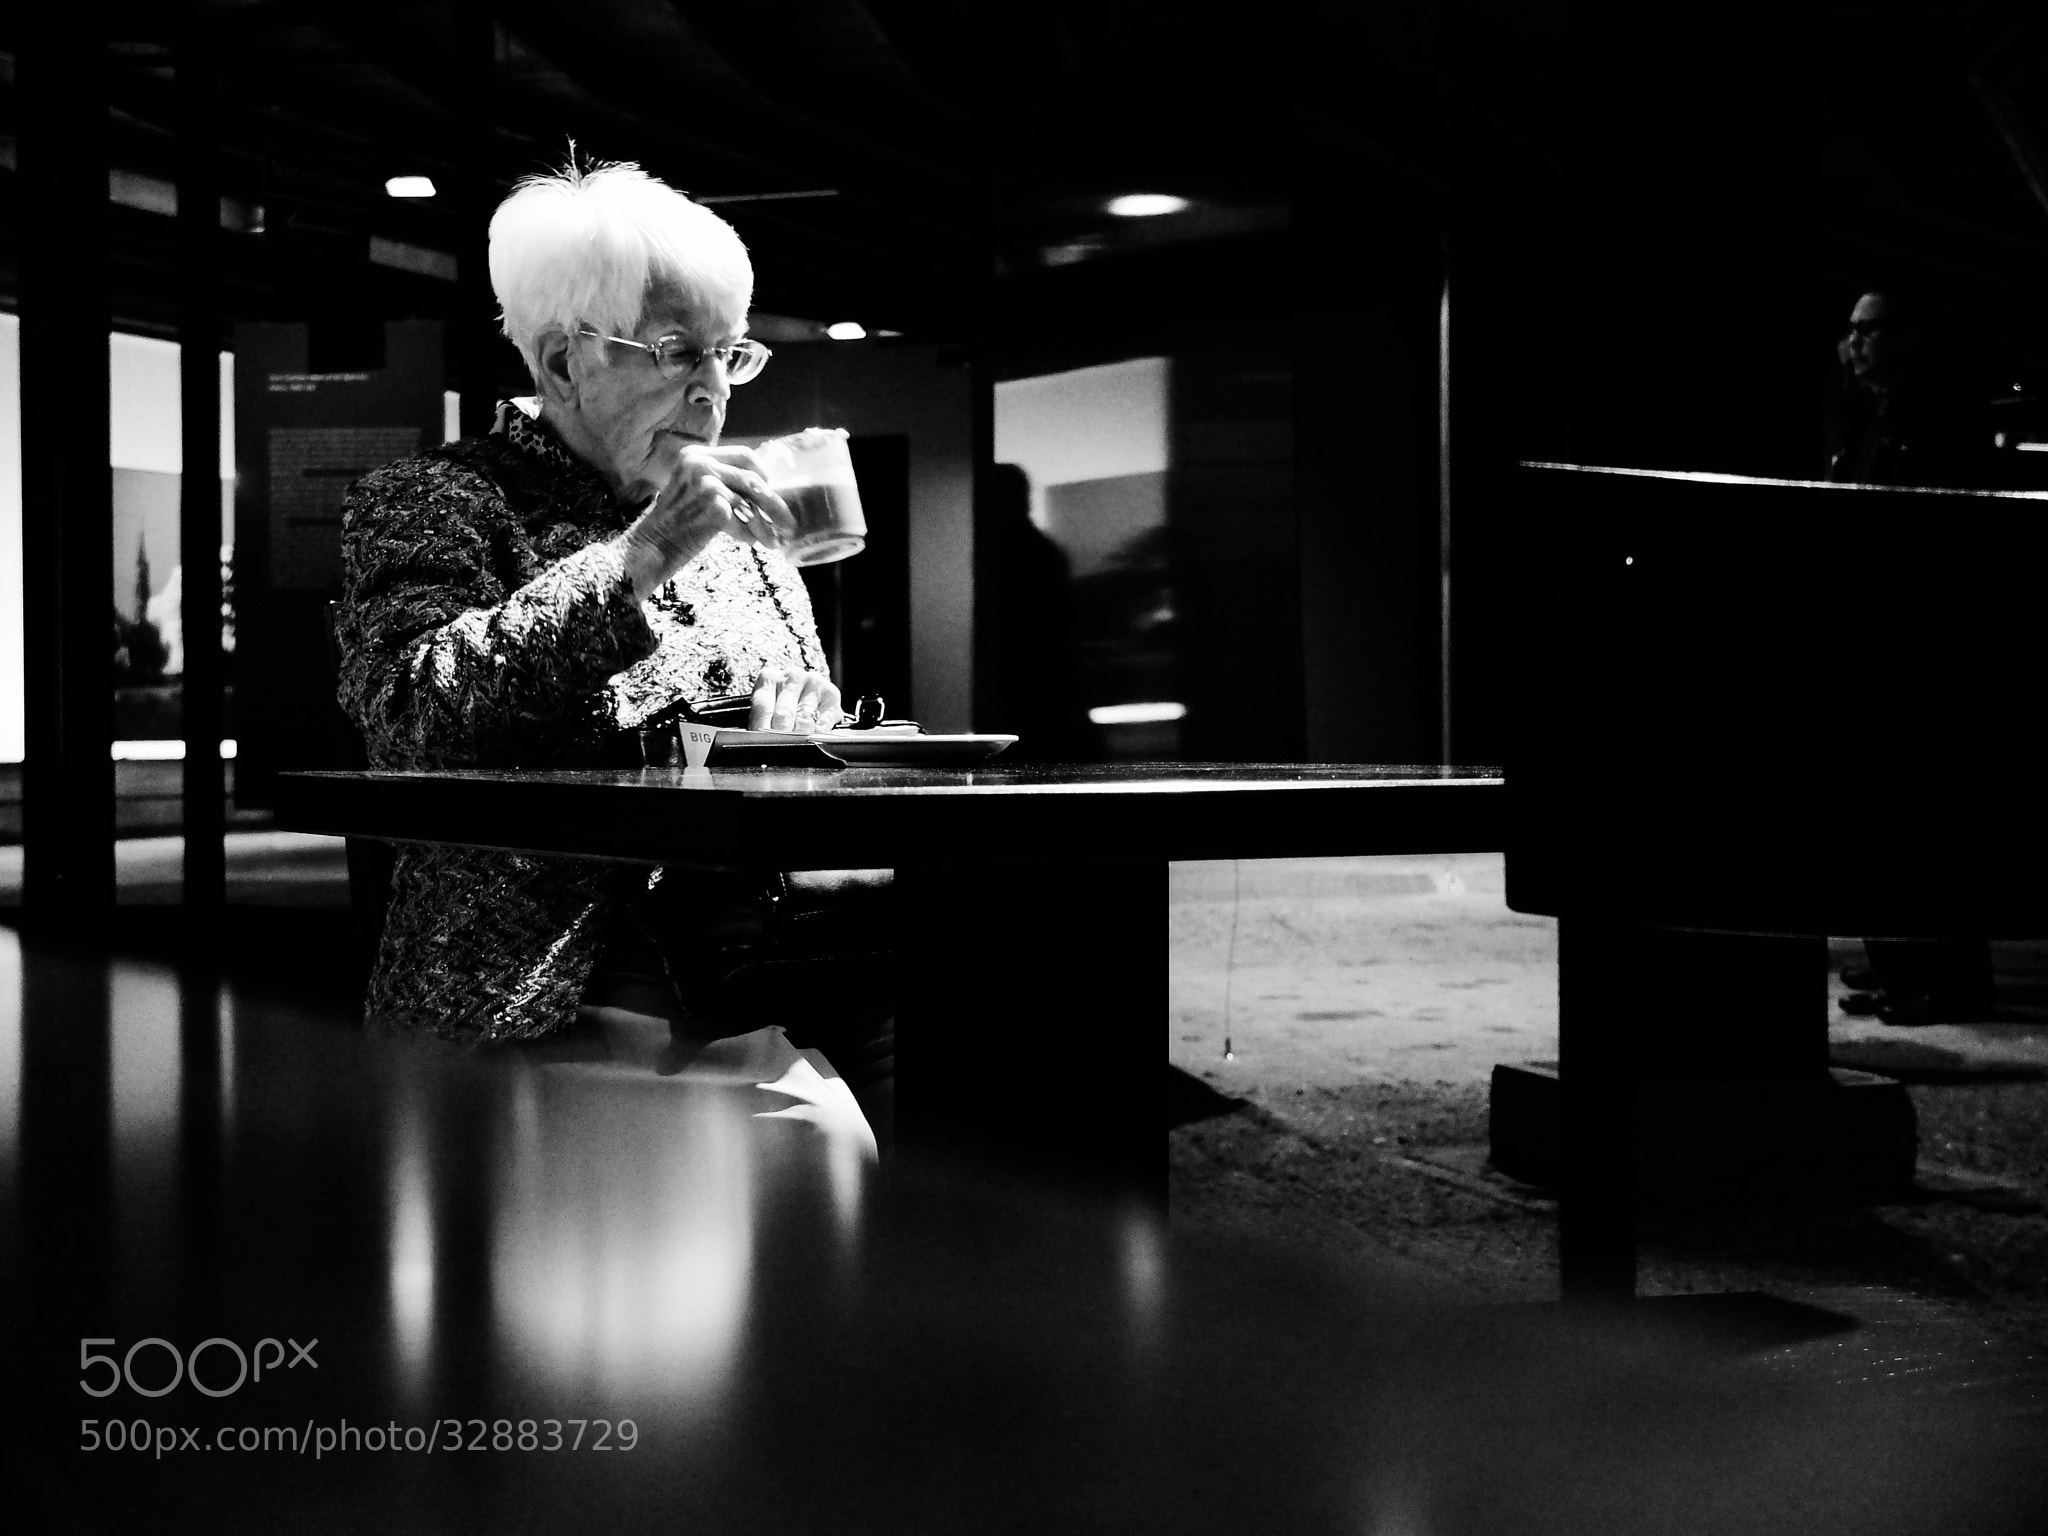 Photograph Cup of Coffe by Georgie Pauwels on 500px